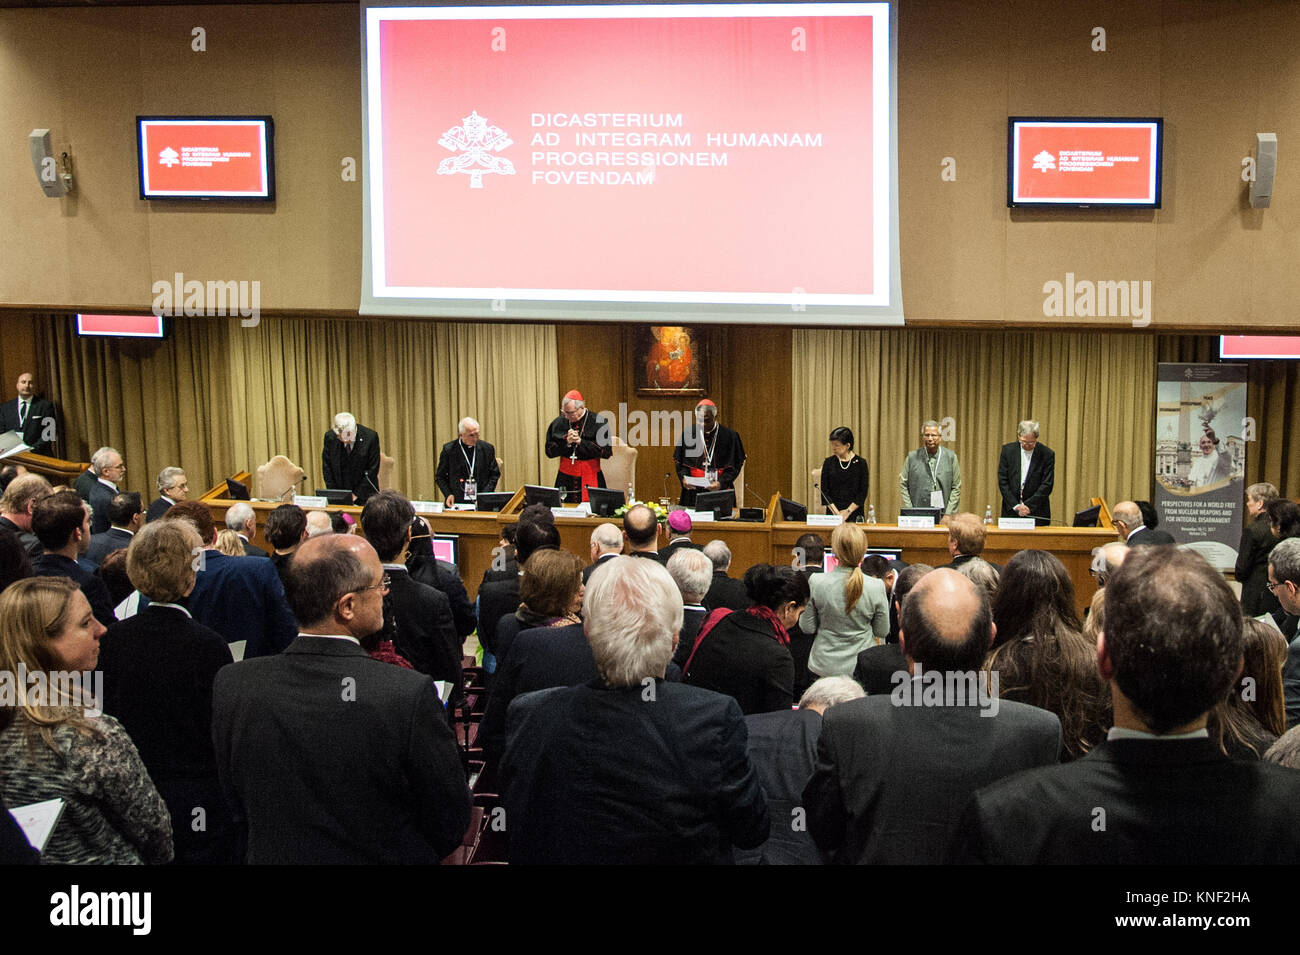 International Symposium: Prospects for a World Free from Nuclear Weapons and for Integral Disarmament, at the New Stock Photo